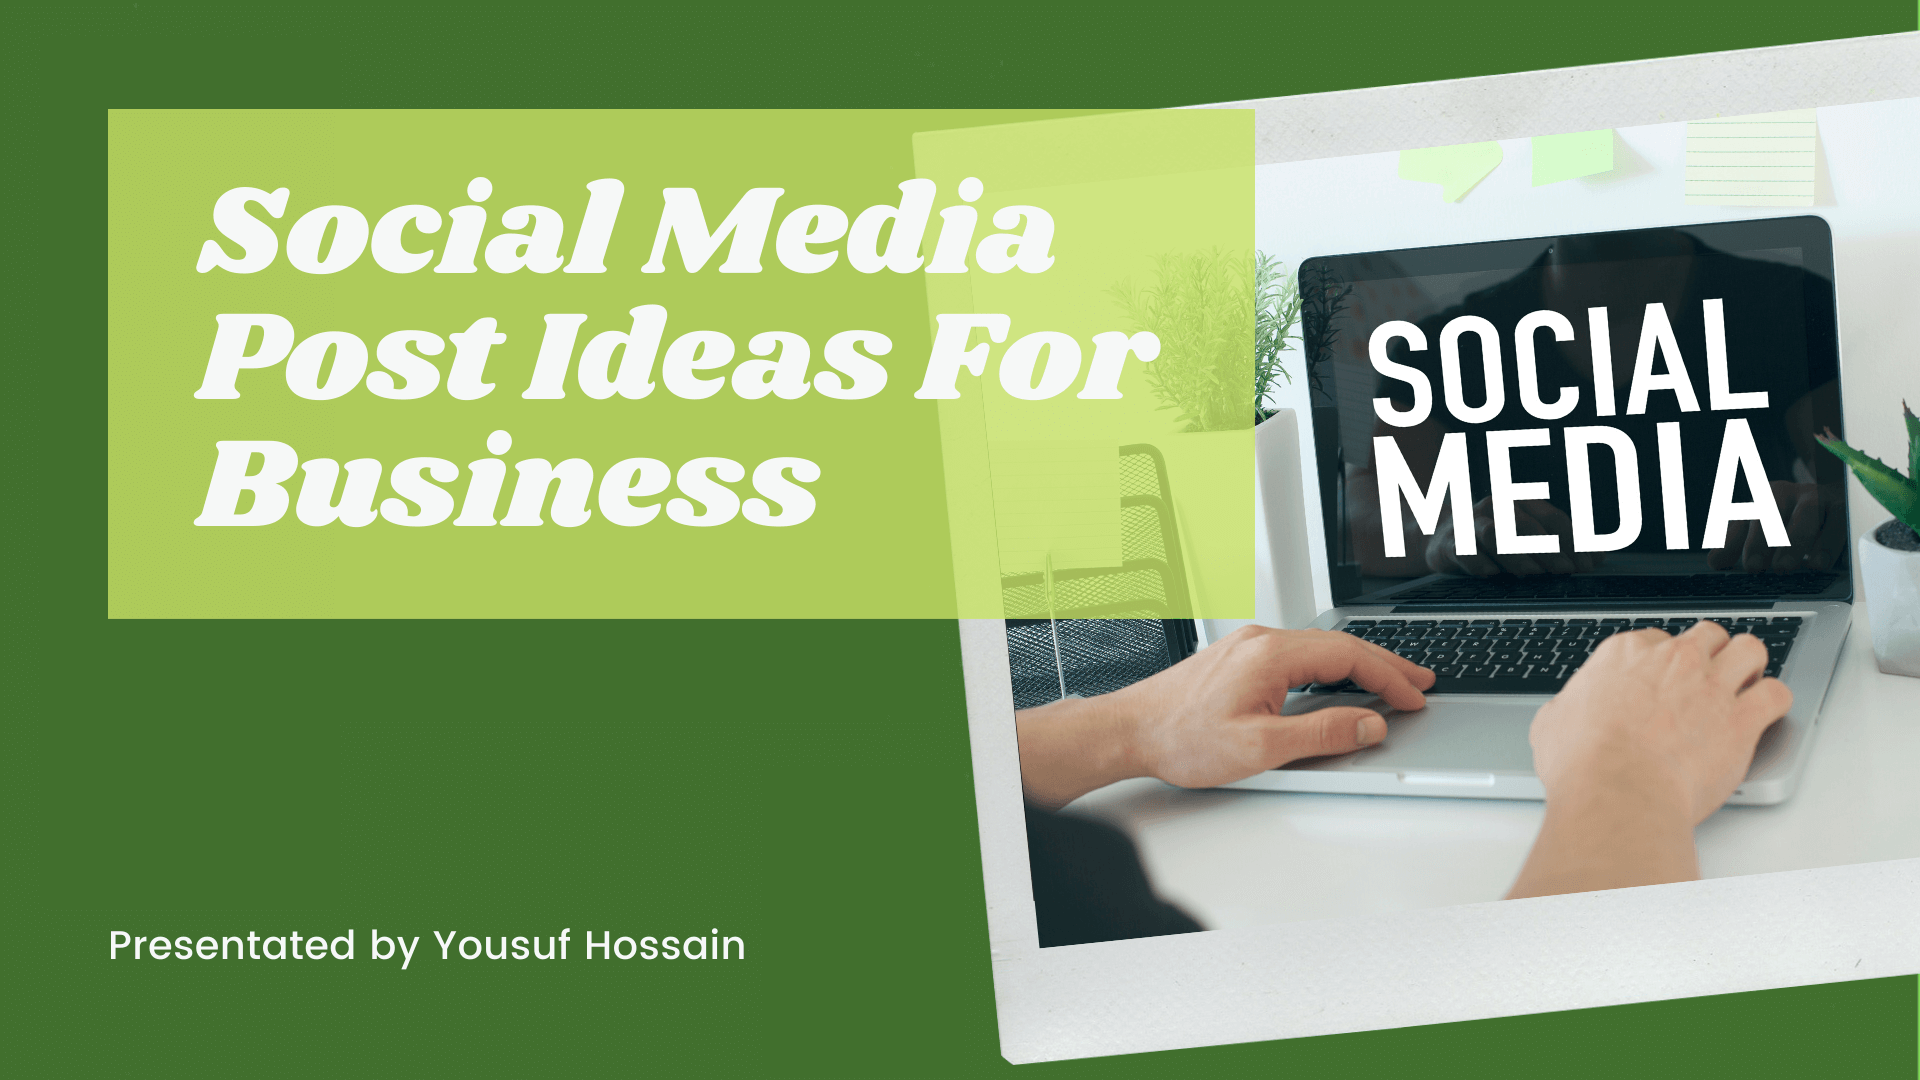 Social Media Post Ideas For Business Easy Wp Solution